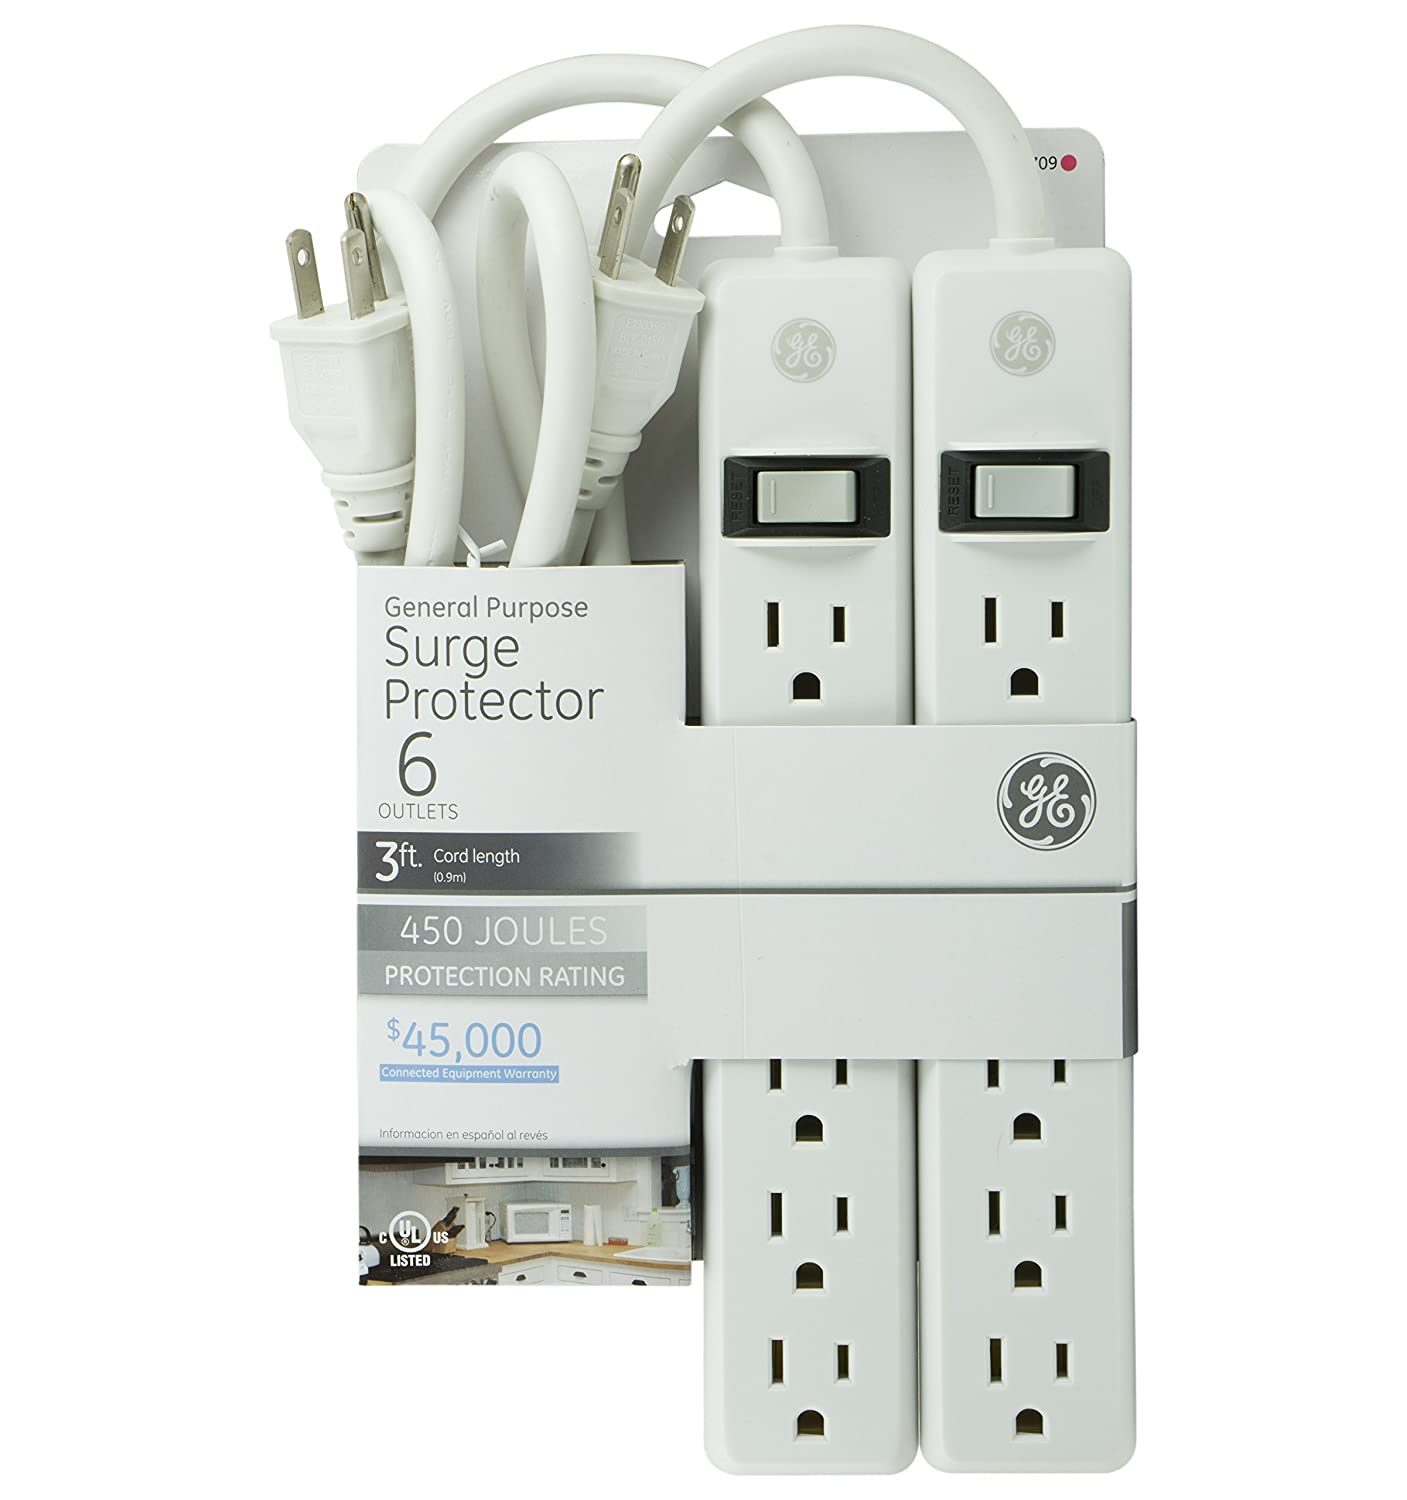 GE Outlet Protector Warranty 14709 Image 2